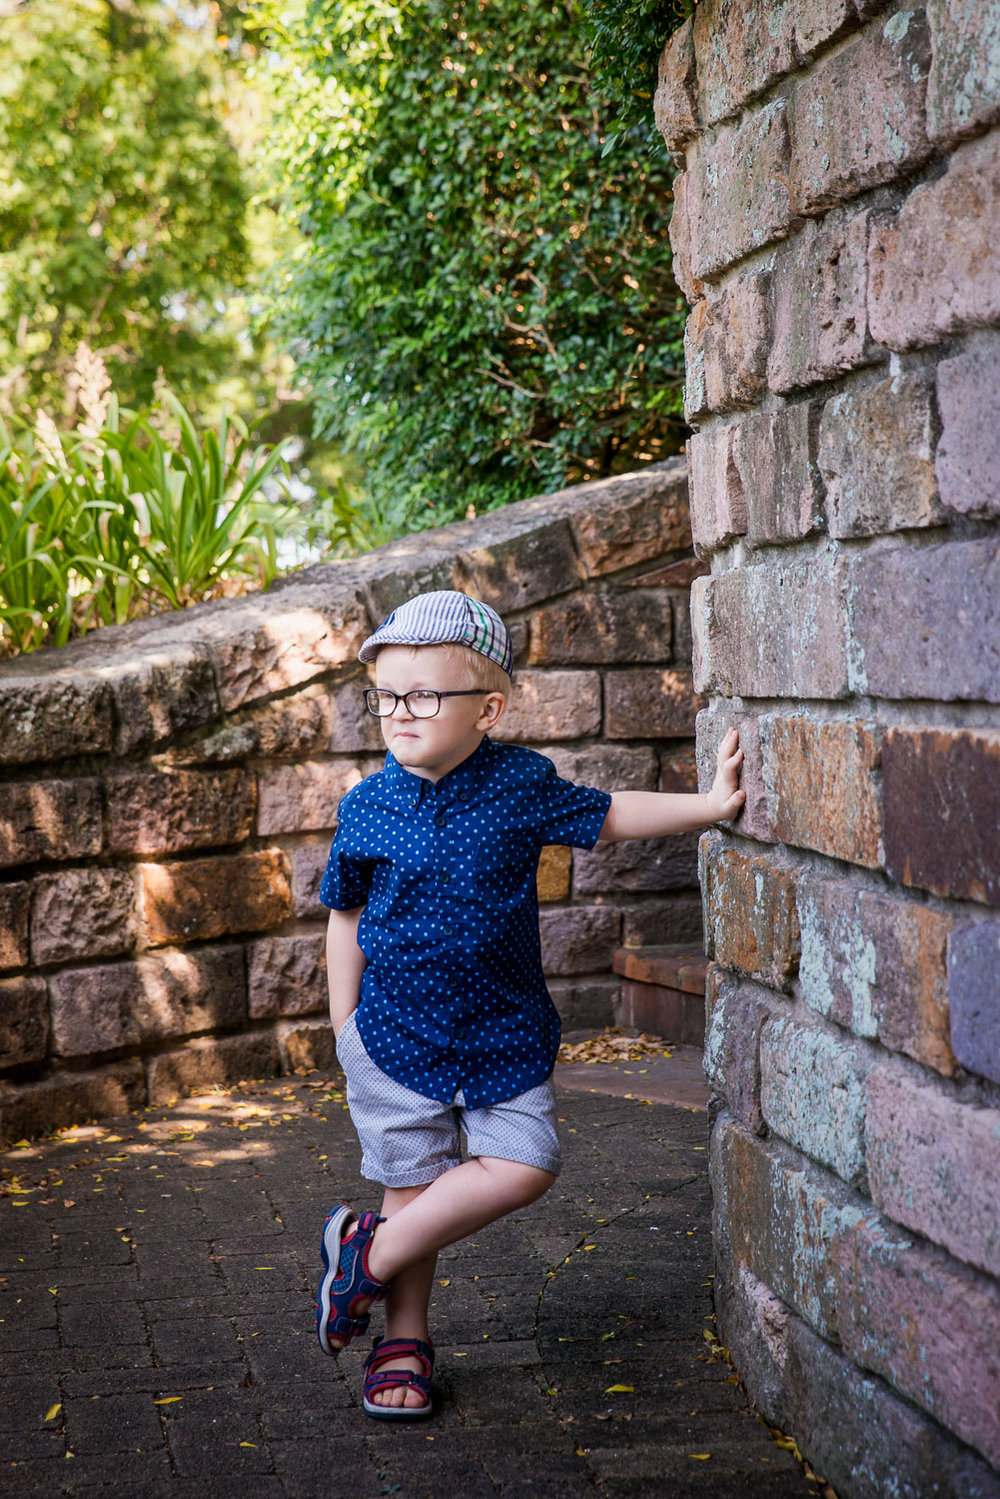 Boy leaning against rock wall in cottage garden